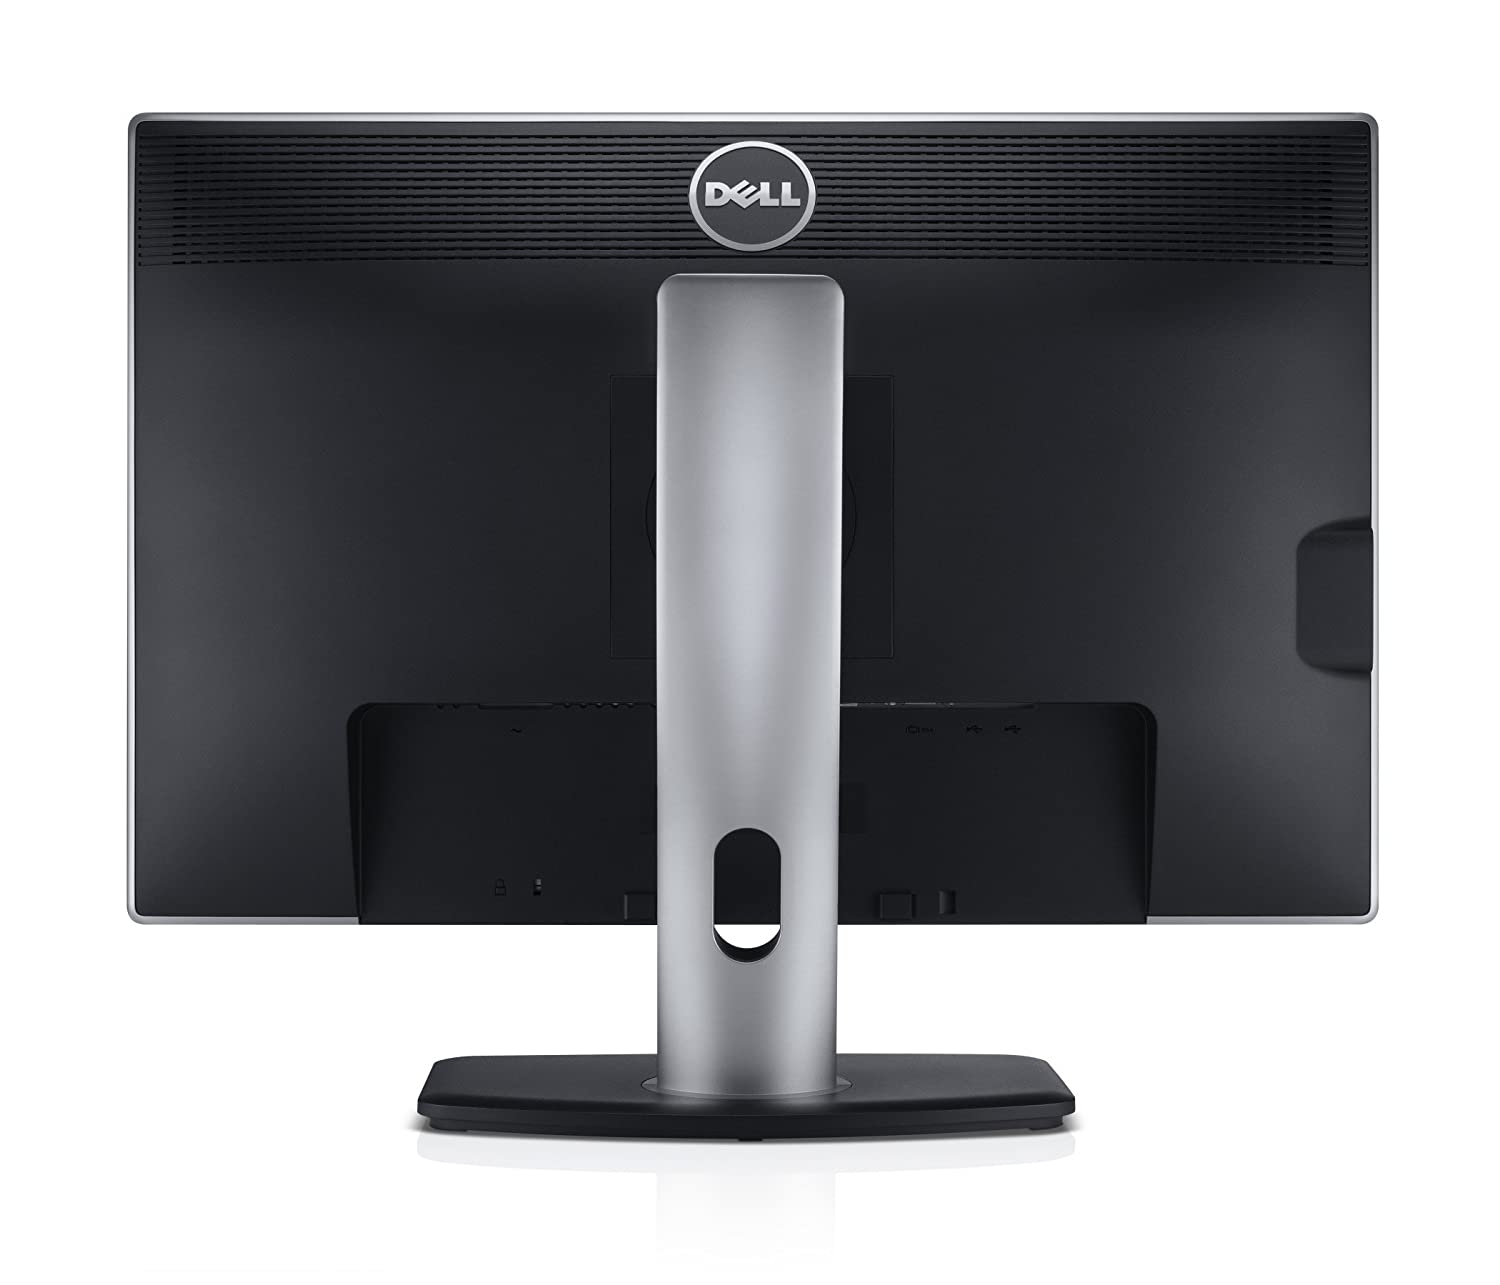 Dell Inspiron One 19 U2412M Monitor Drivers PC